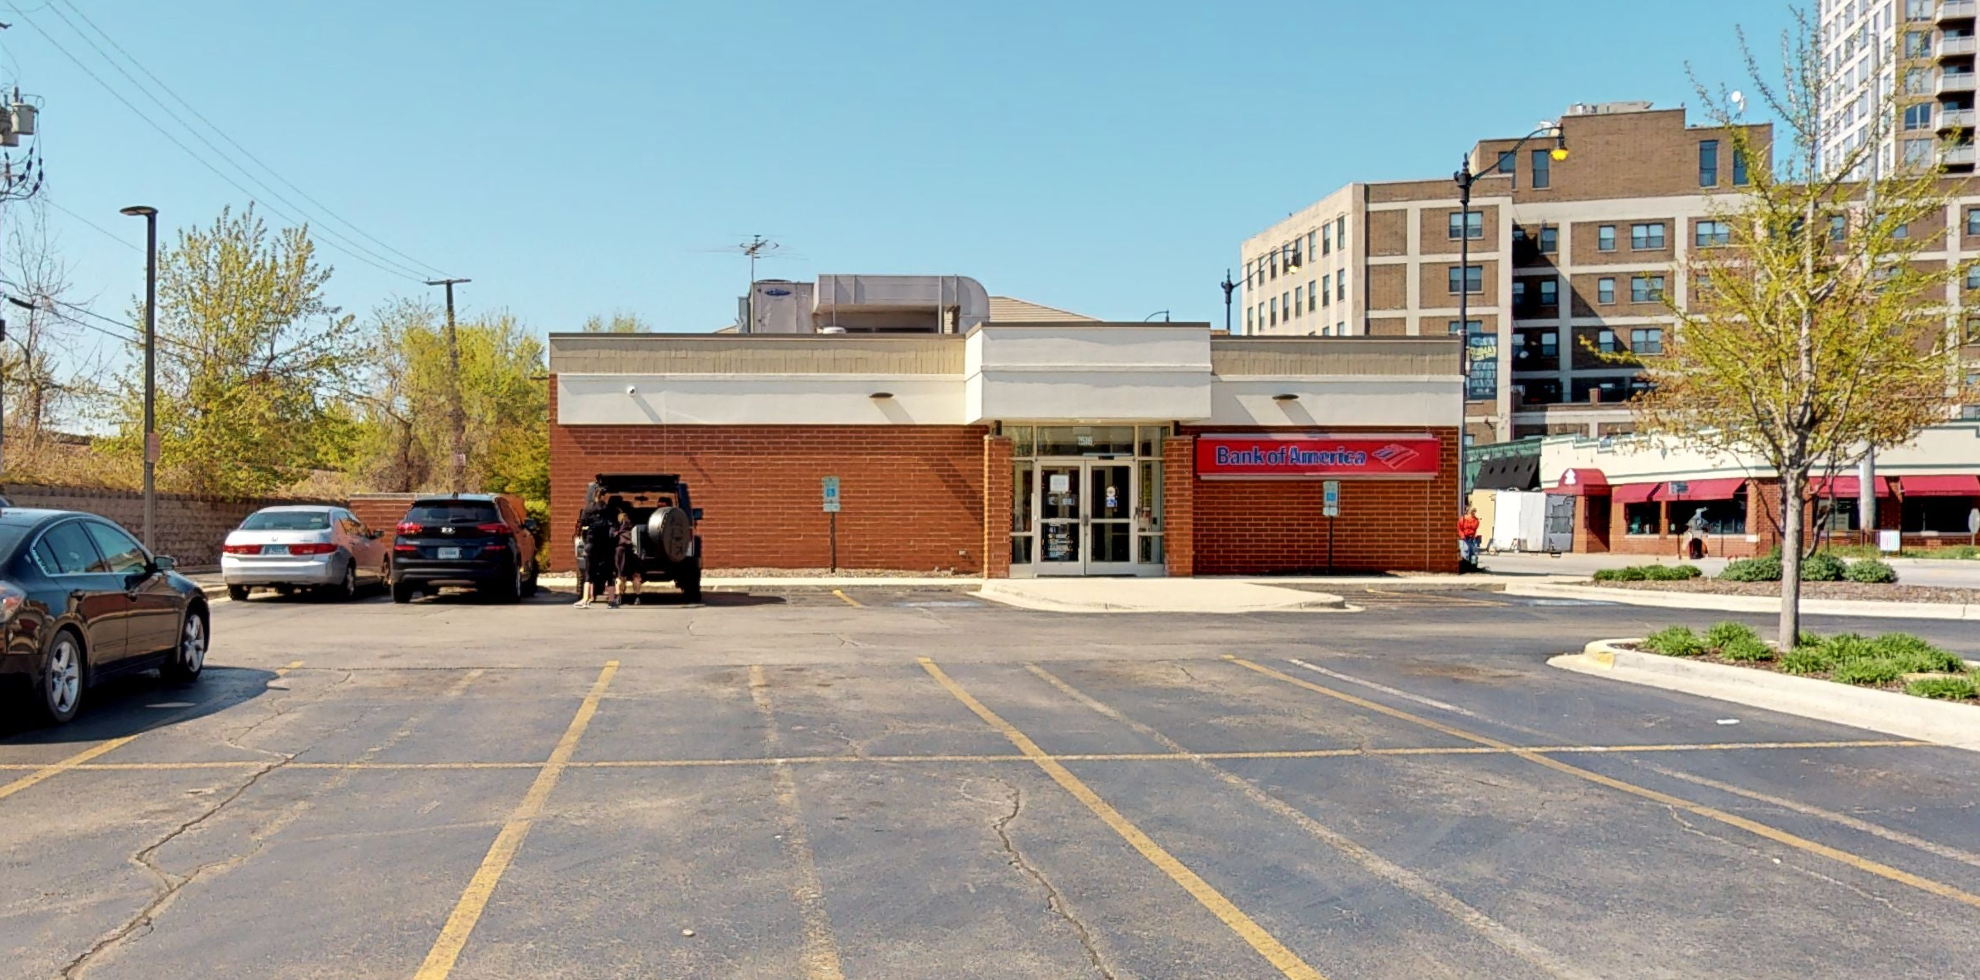 Bank of America financial center with drive-thru ATM and teller   7516 N Clark St, Chicago, IL 60626